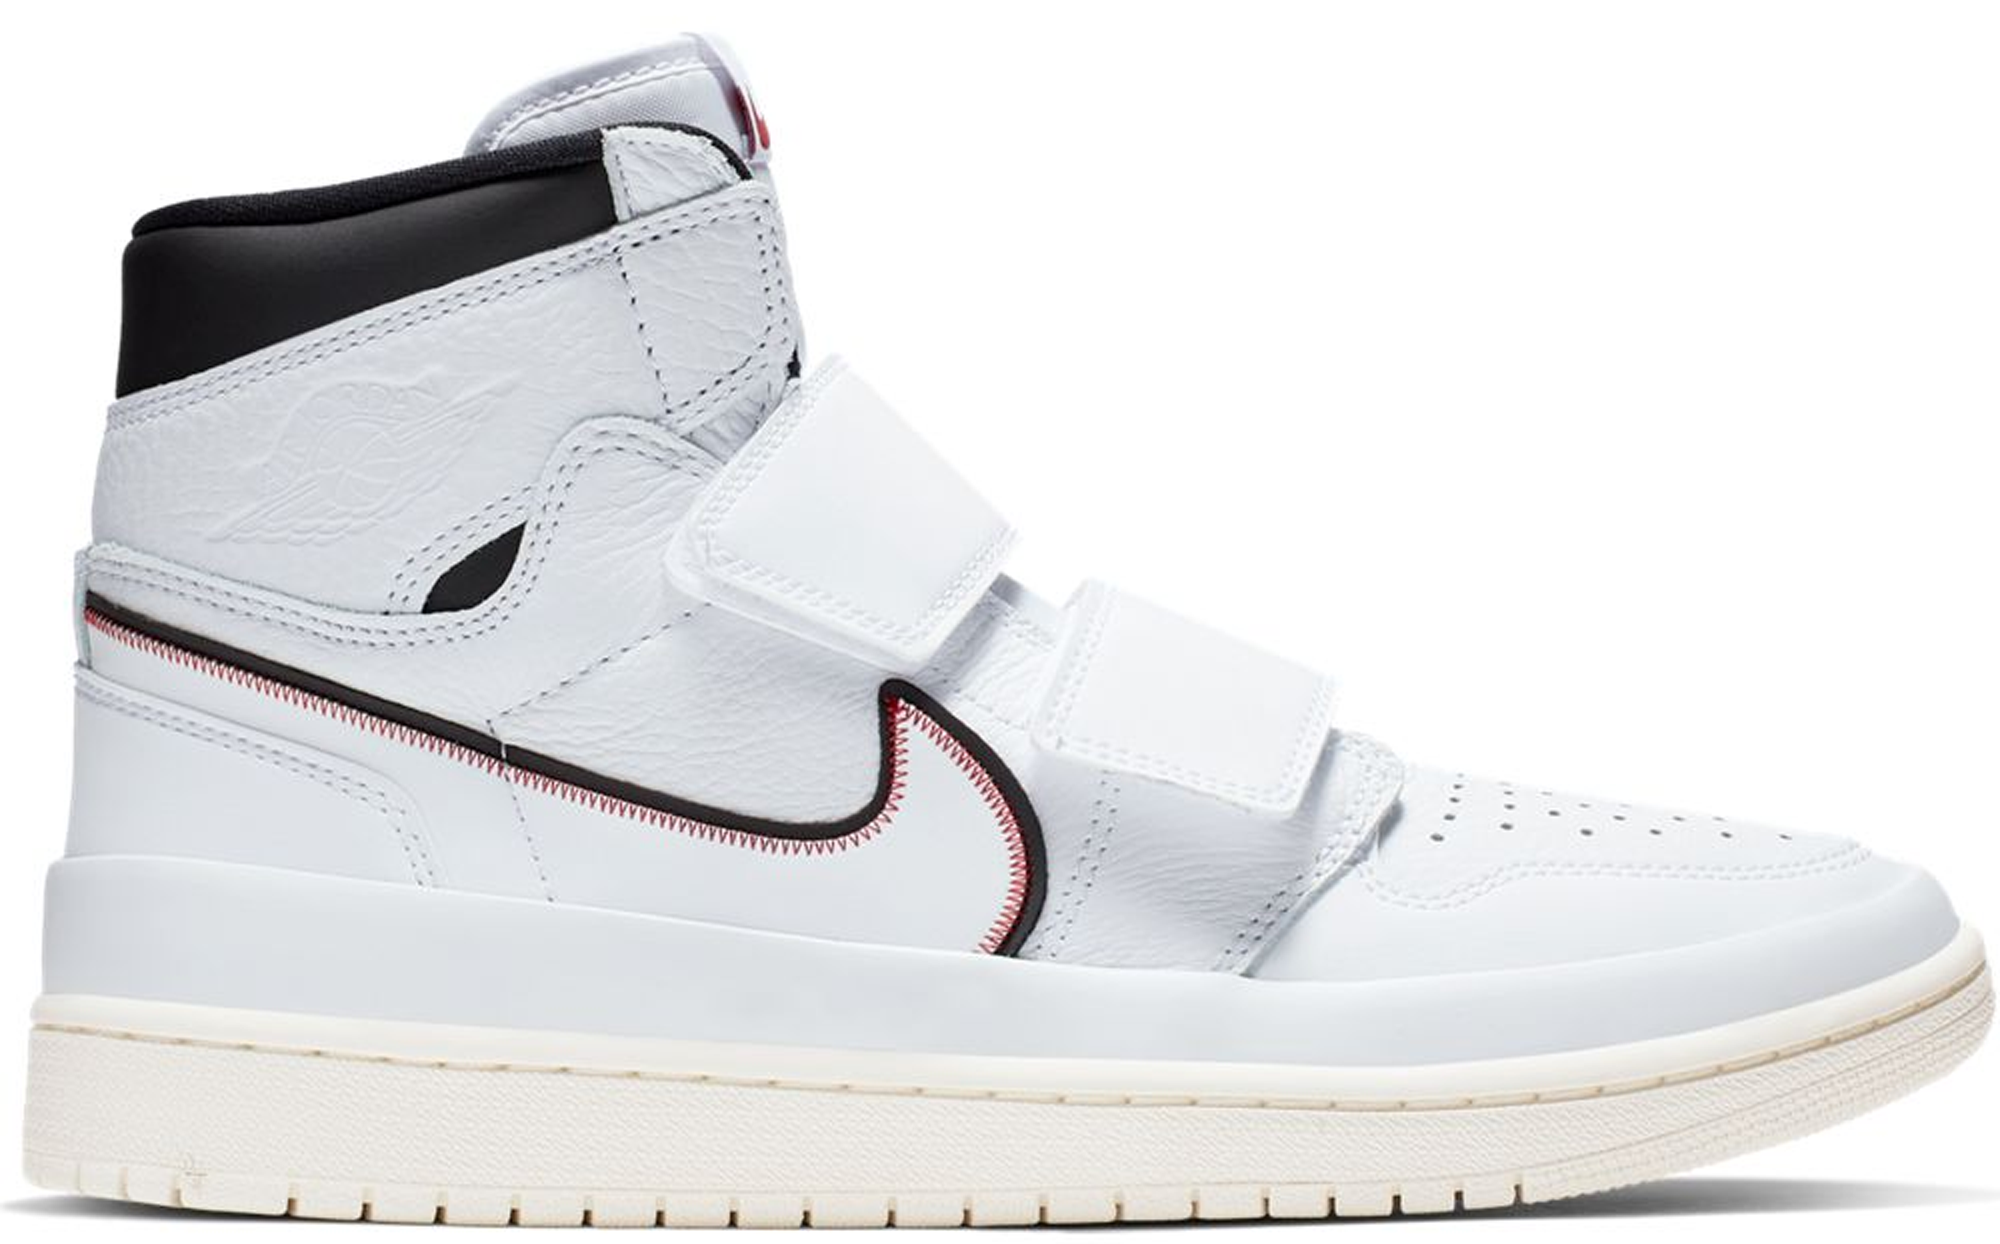 2e67067a Check out the Jordan 1 Retro High Double Strap White Black Sail available  on StockX